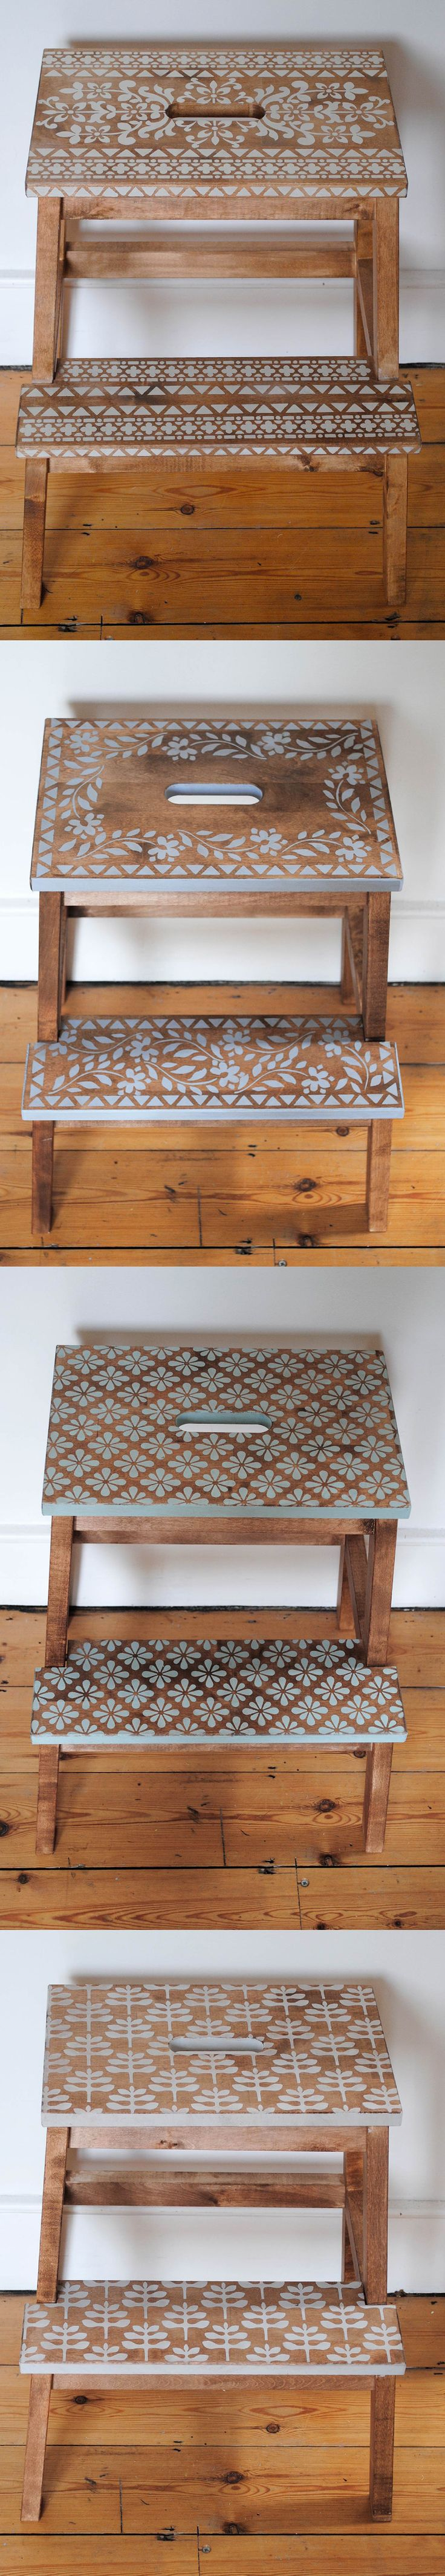 Four ways to stencil an Ikea Step Stool. Stencils and paint from Nicolette Tabram Designs. As seen in #reloved magazine…